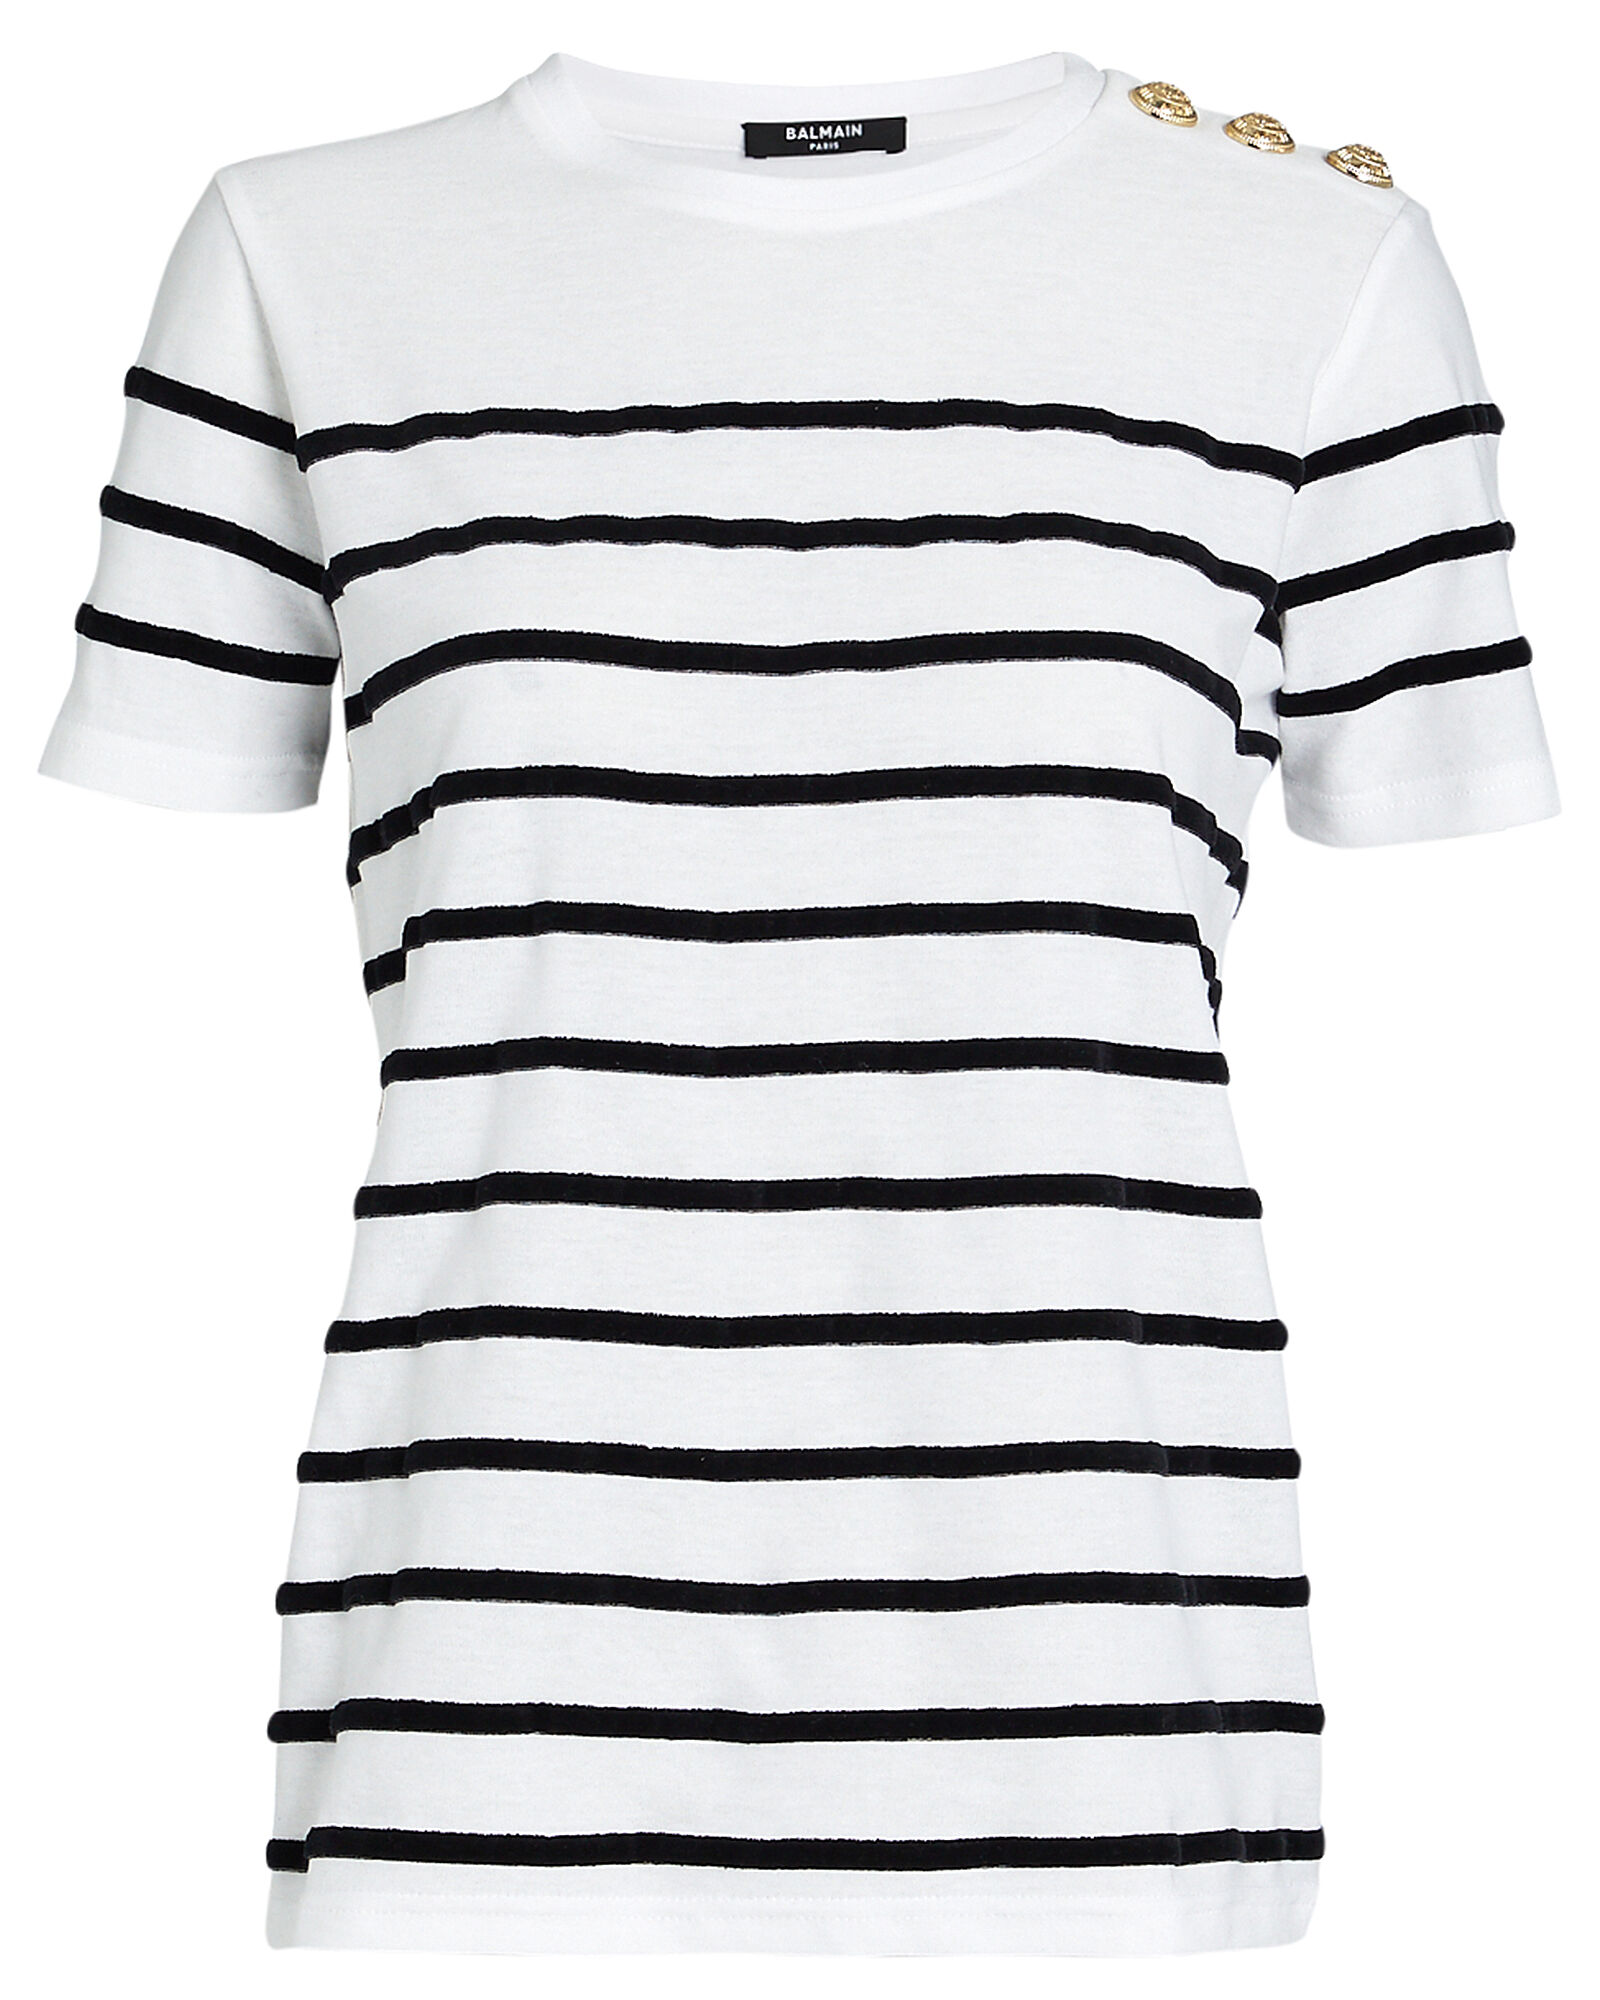 Velour Striped Cotton T-Shirt, BLACK/WHITE, hi-res